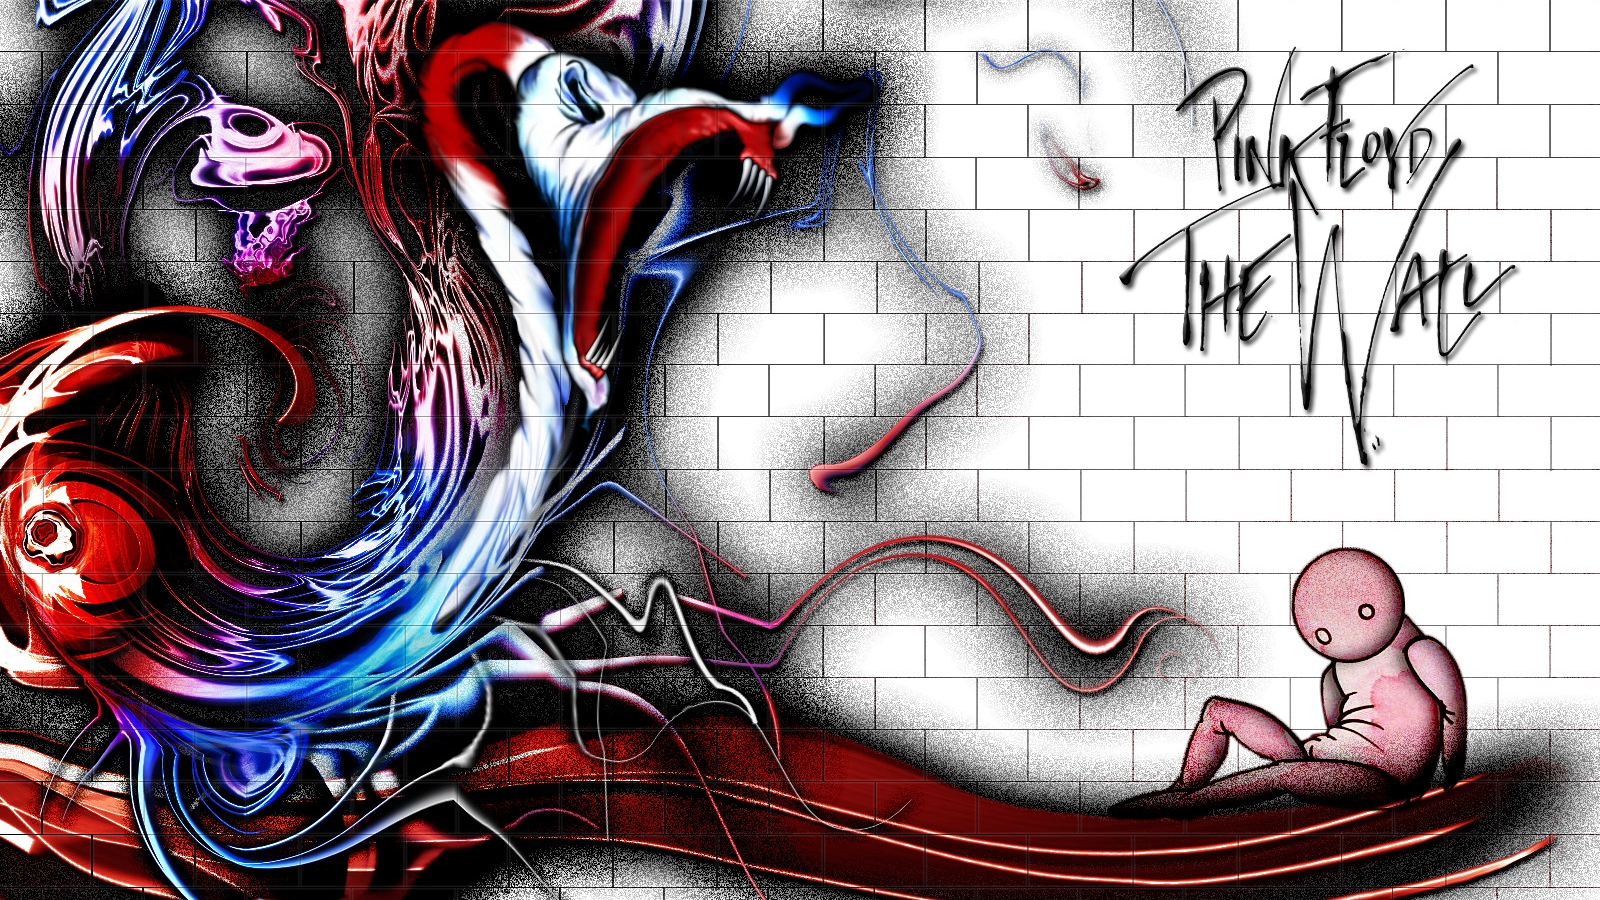 Download Pink Floyd Wallpaper 1600x900 Wallpoper 249752 1600x900